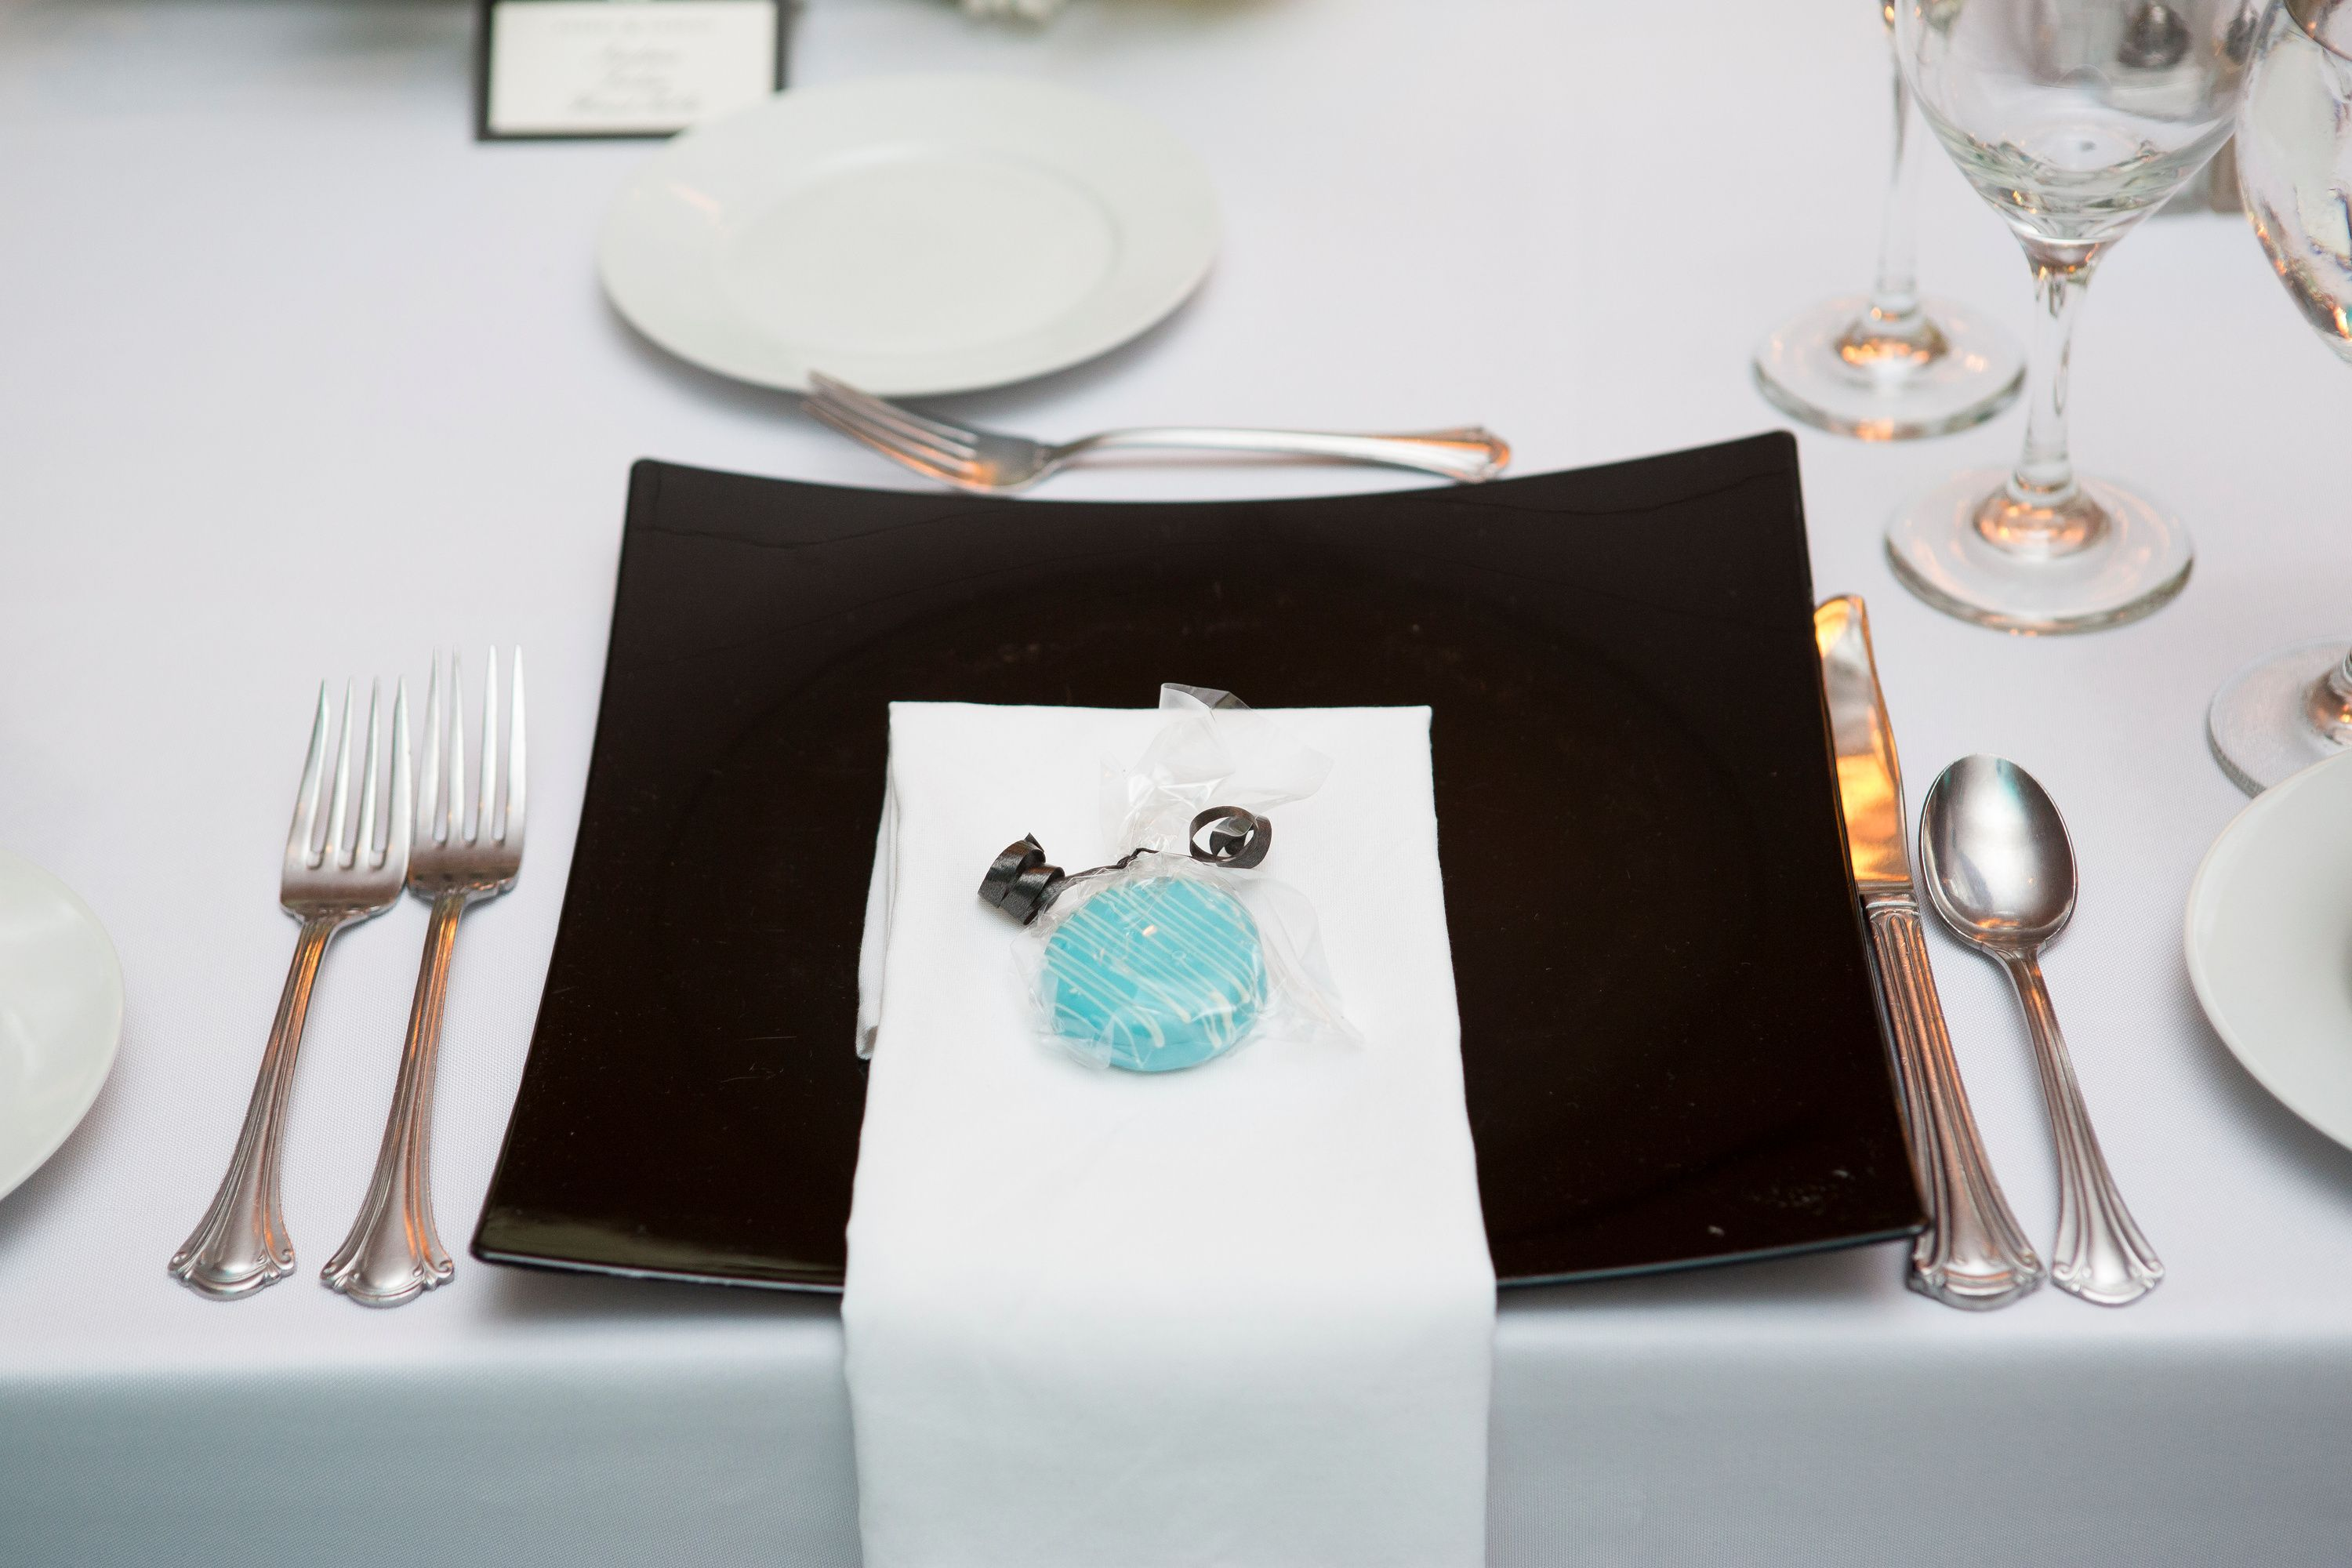 Tiffany blue wedding favor - chocolate covered Oreo | Details from ...